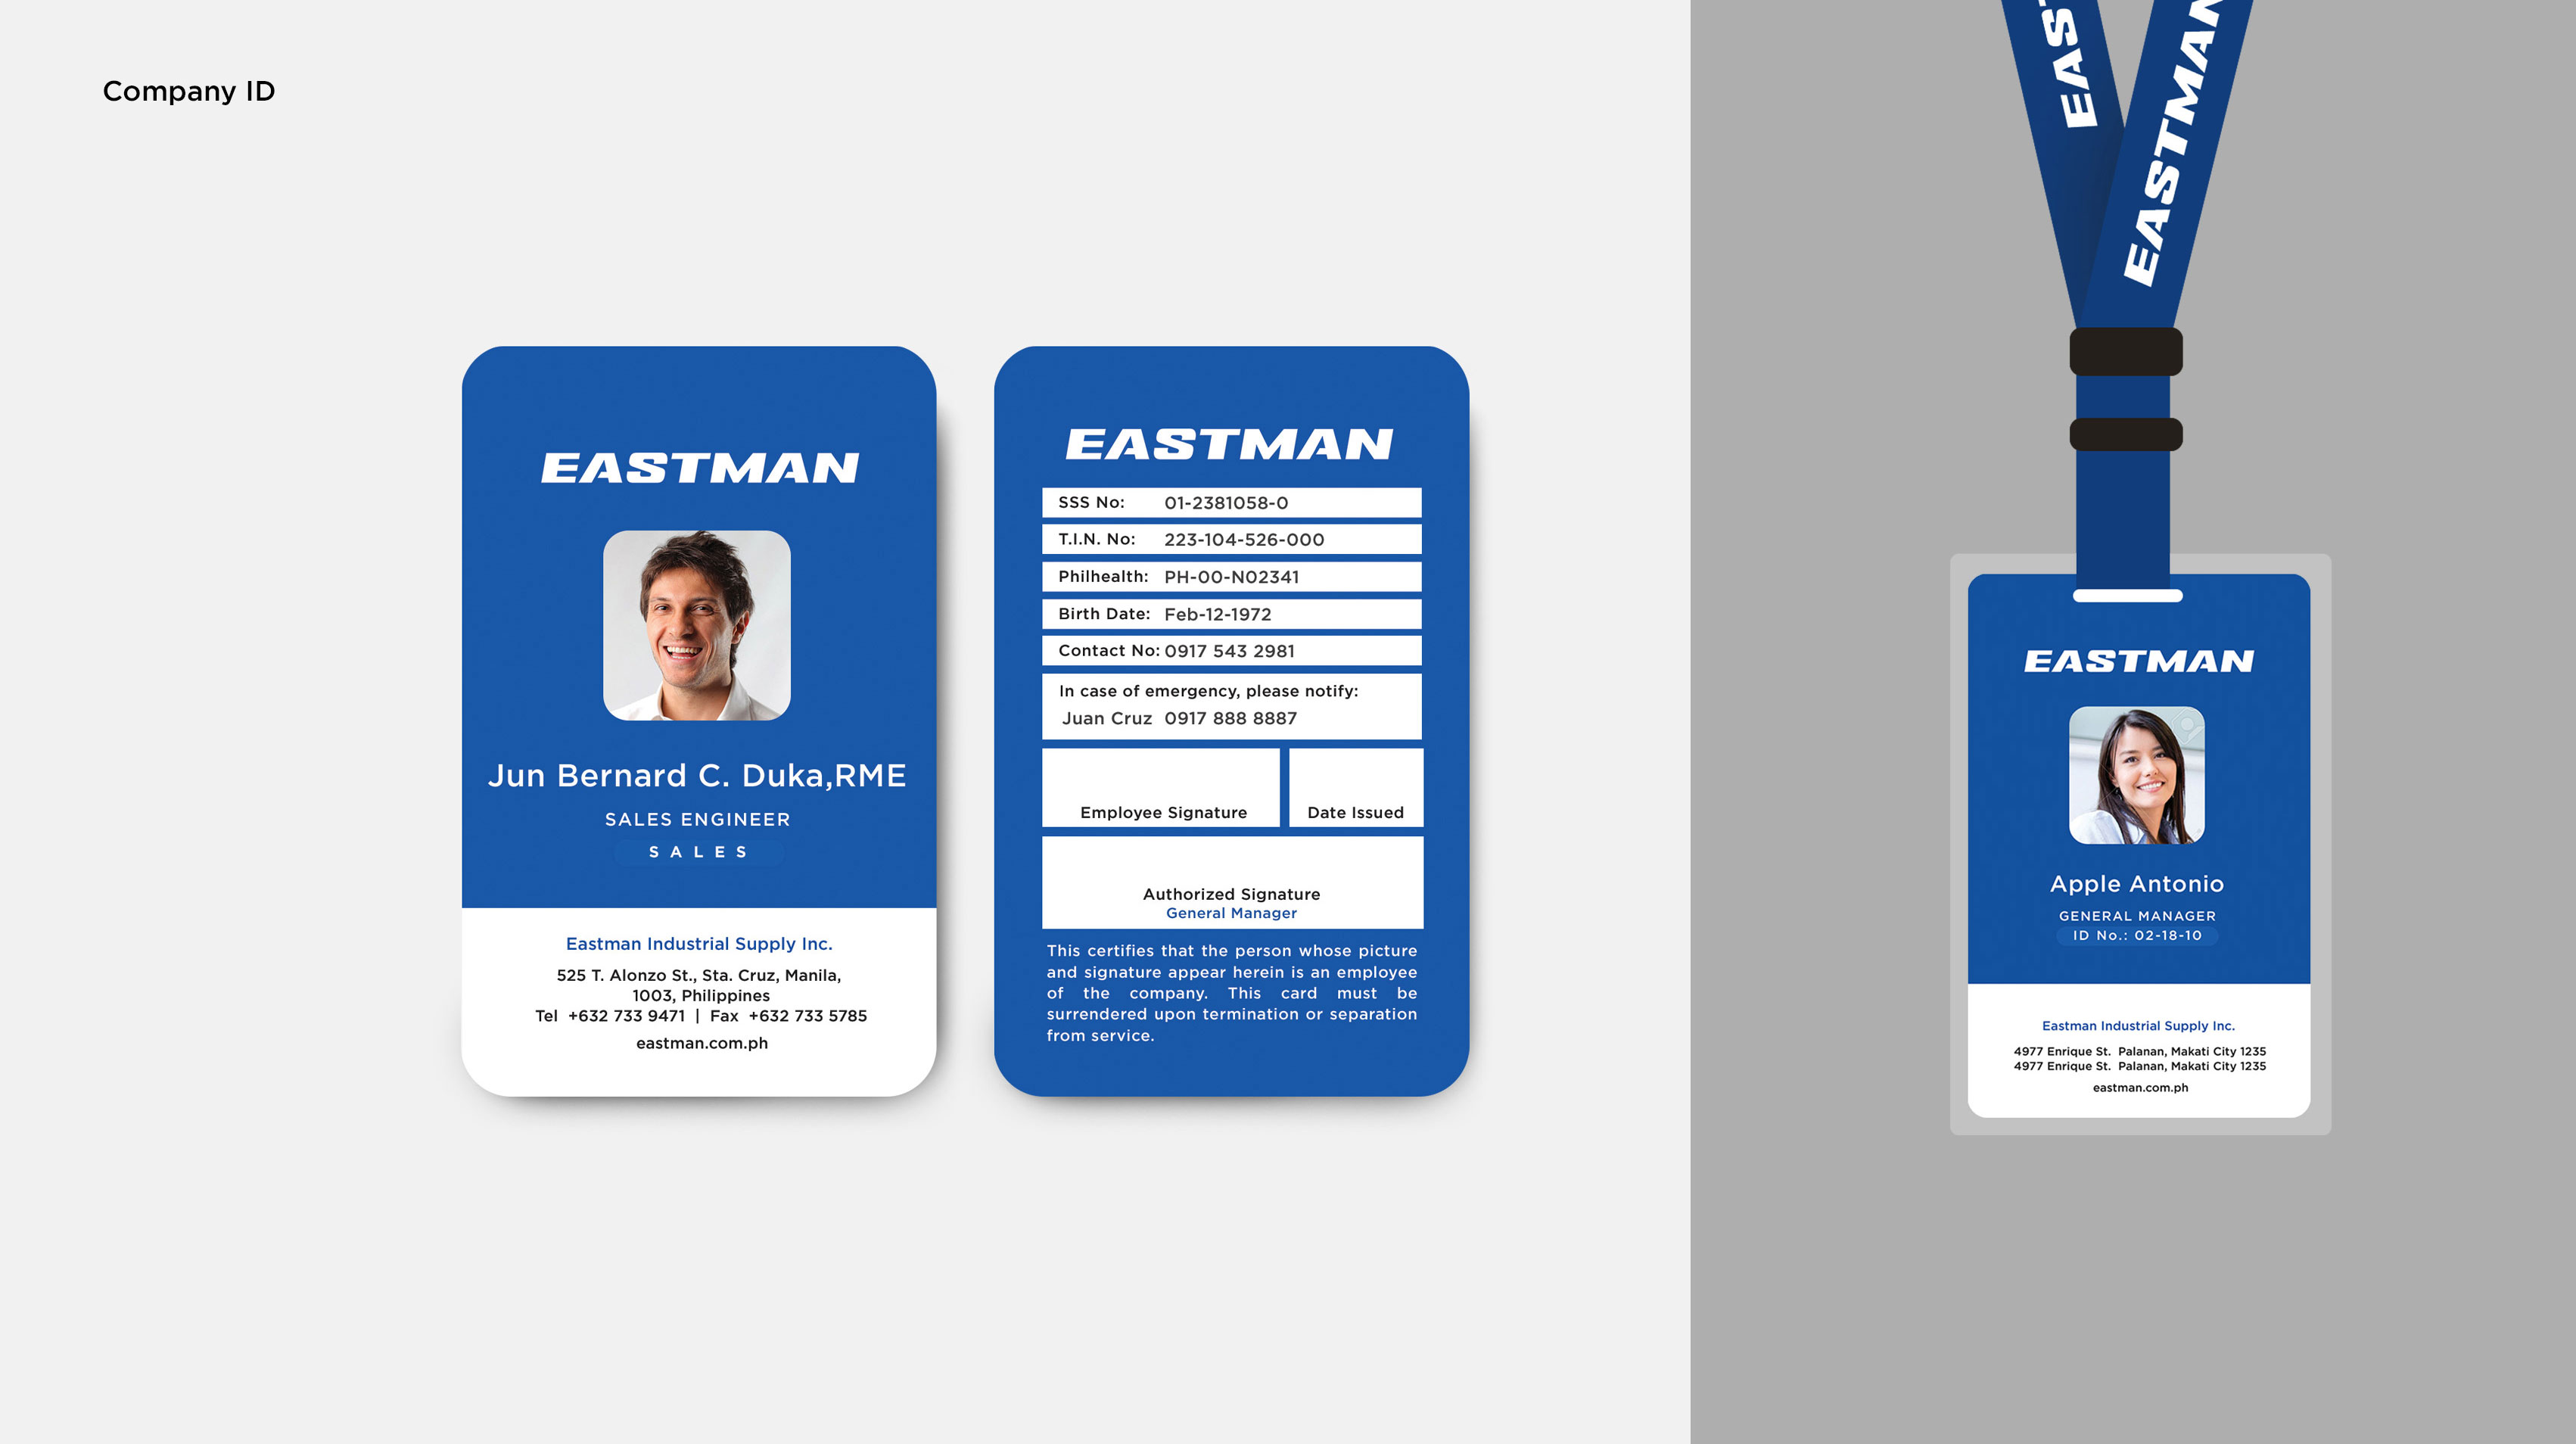 14-Eastman-Collaterals-ID